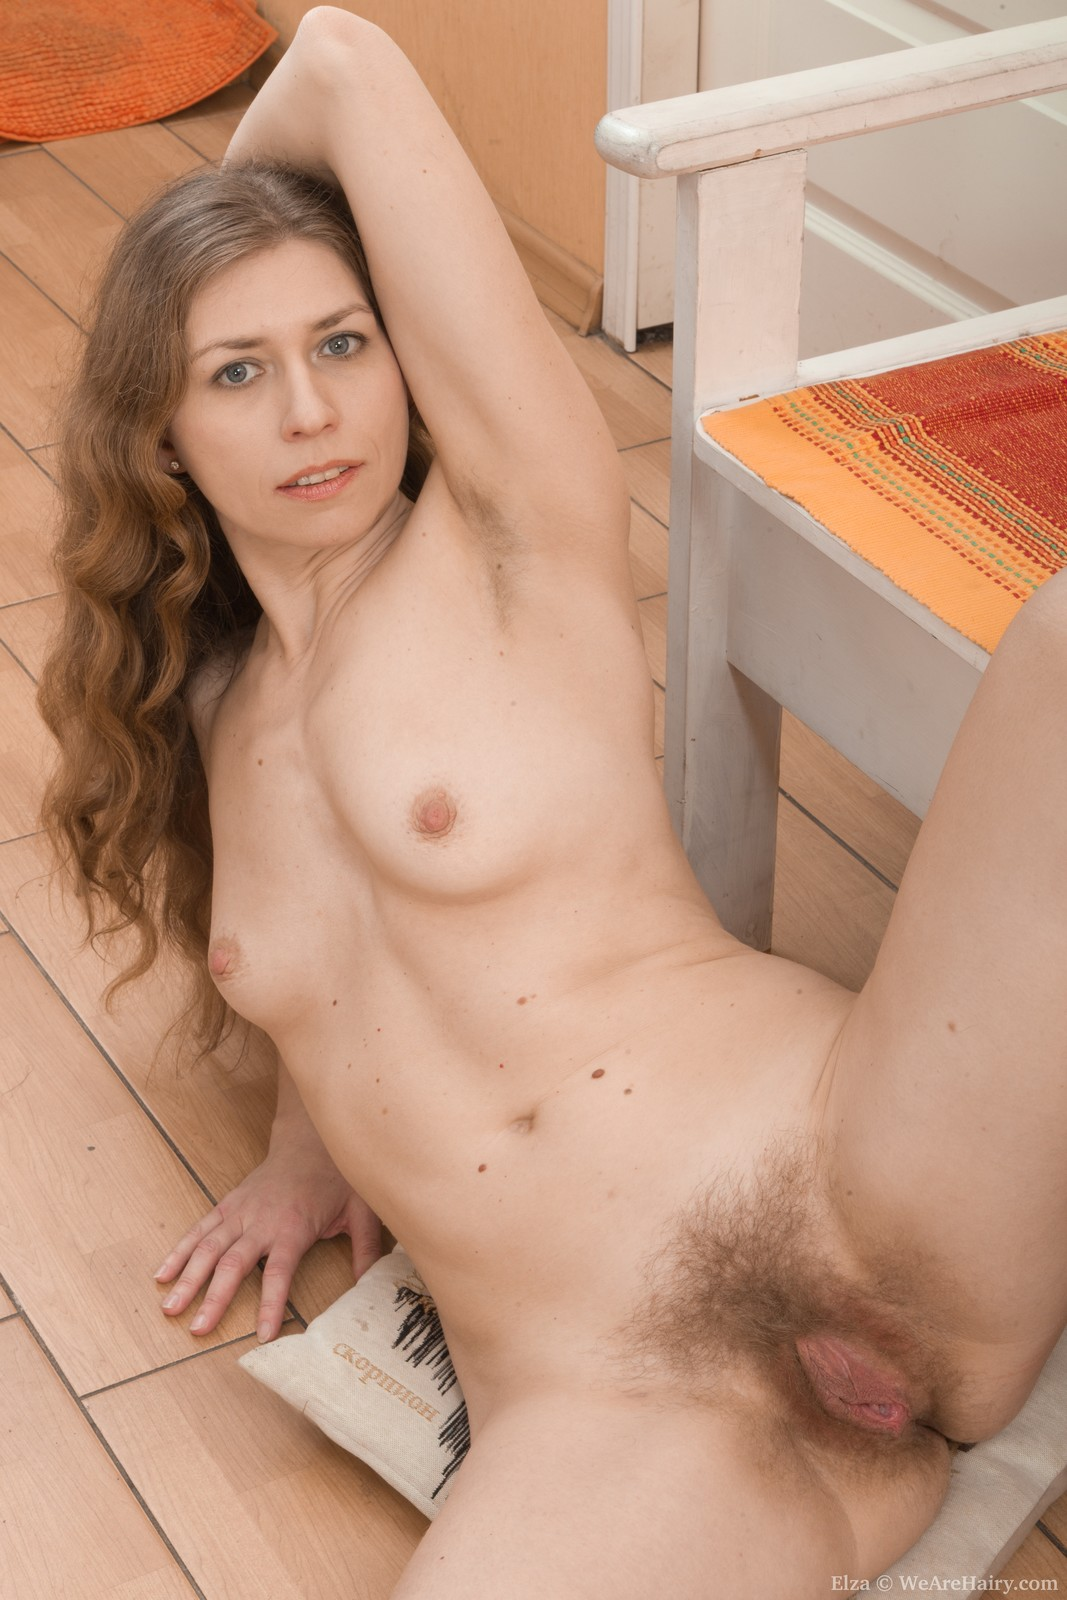 Elza strips naked in bedroom and models on a chair 7